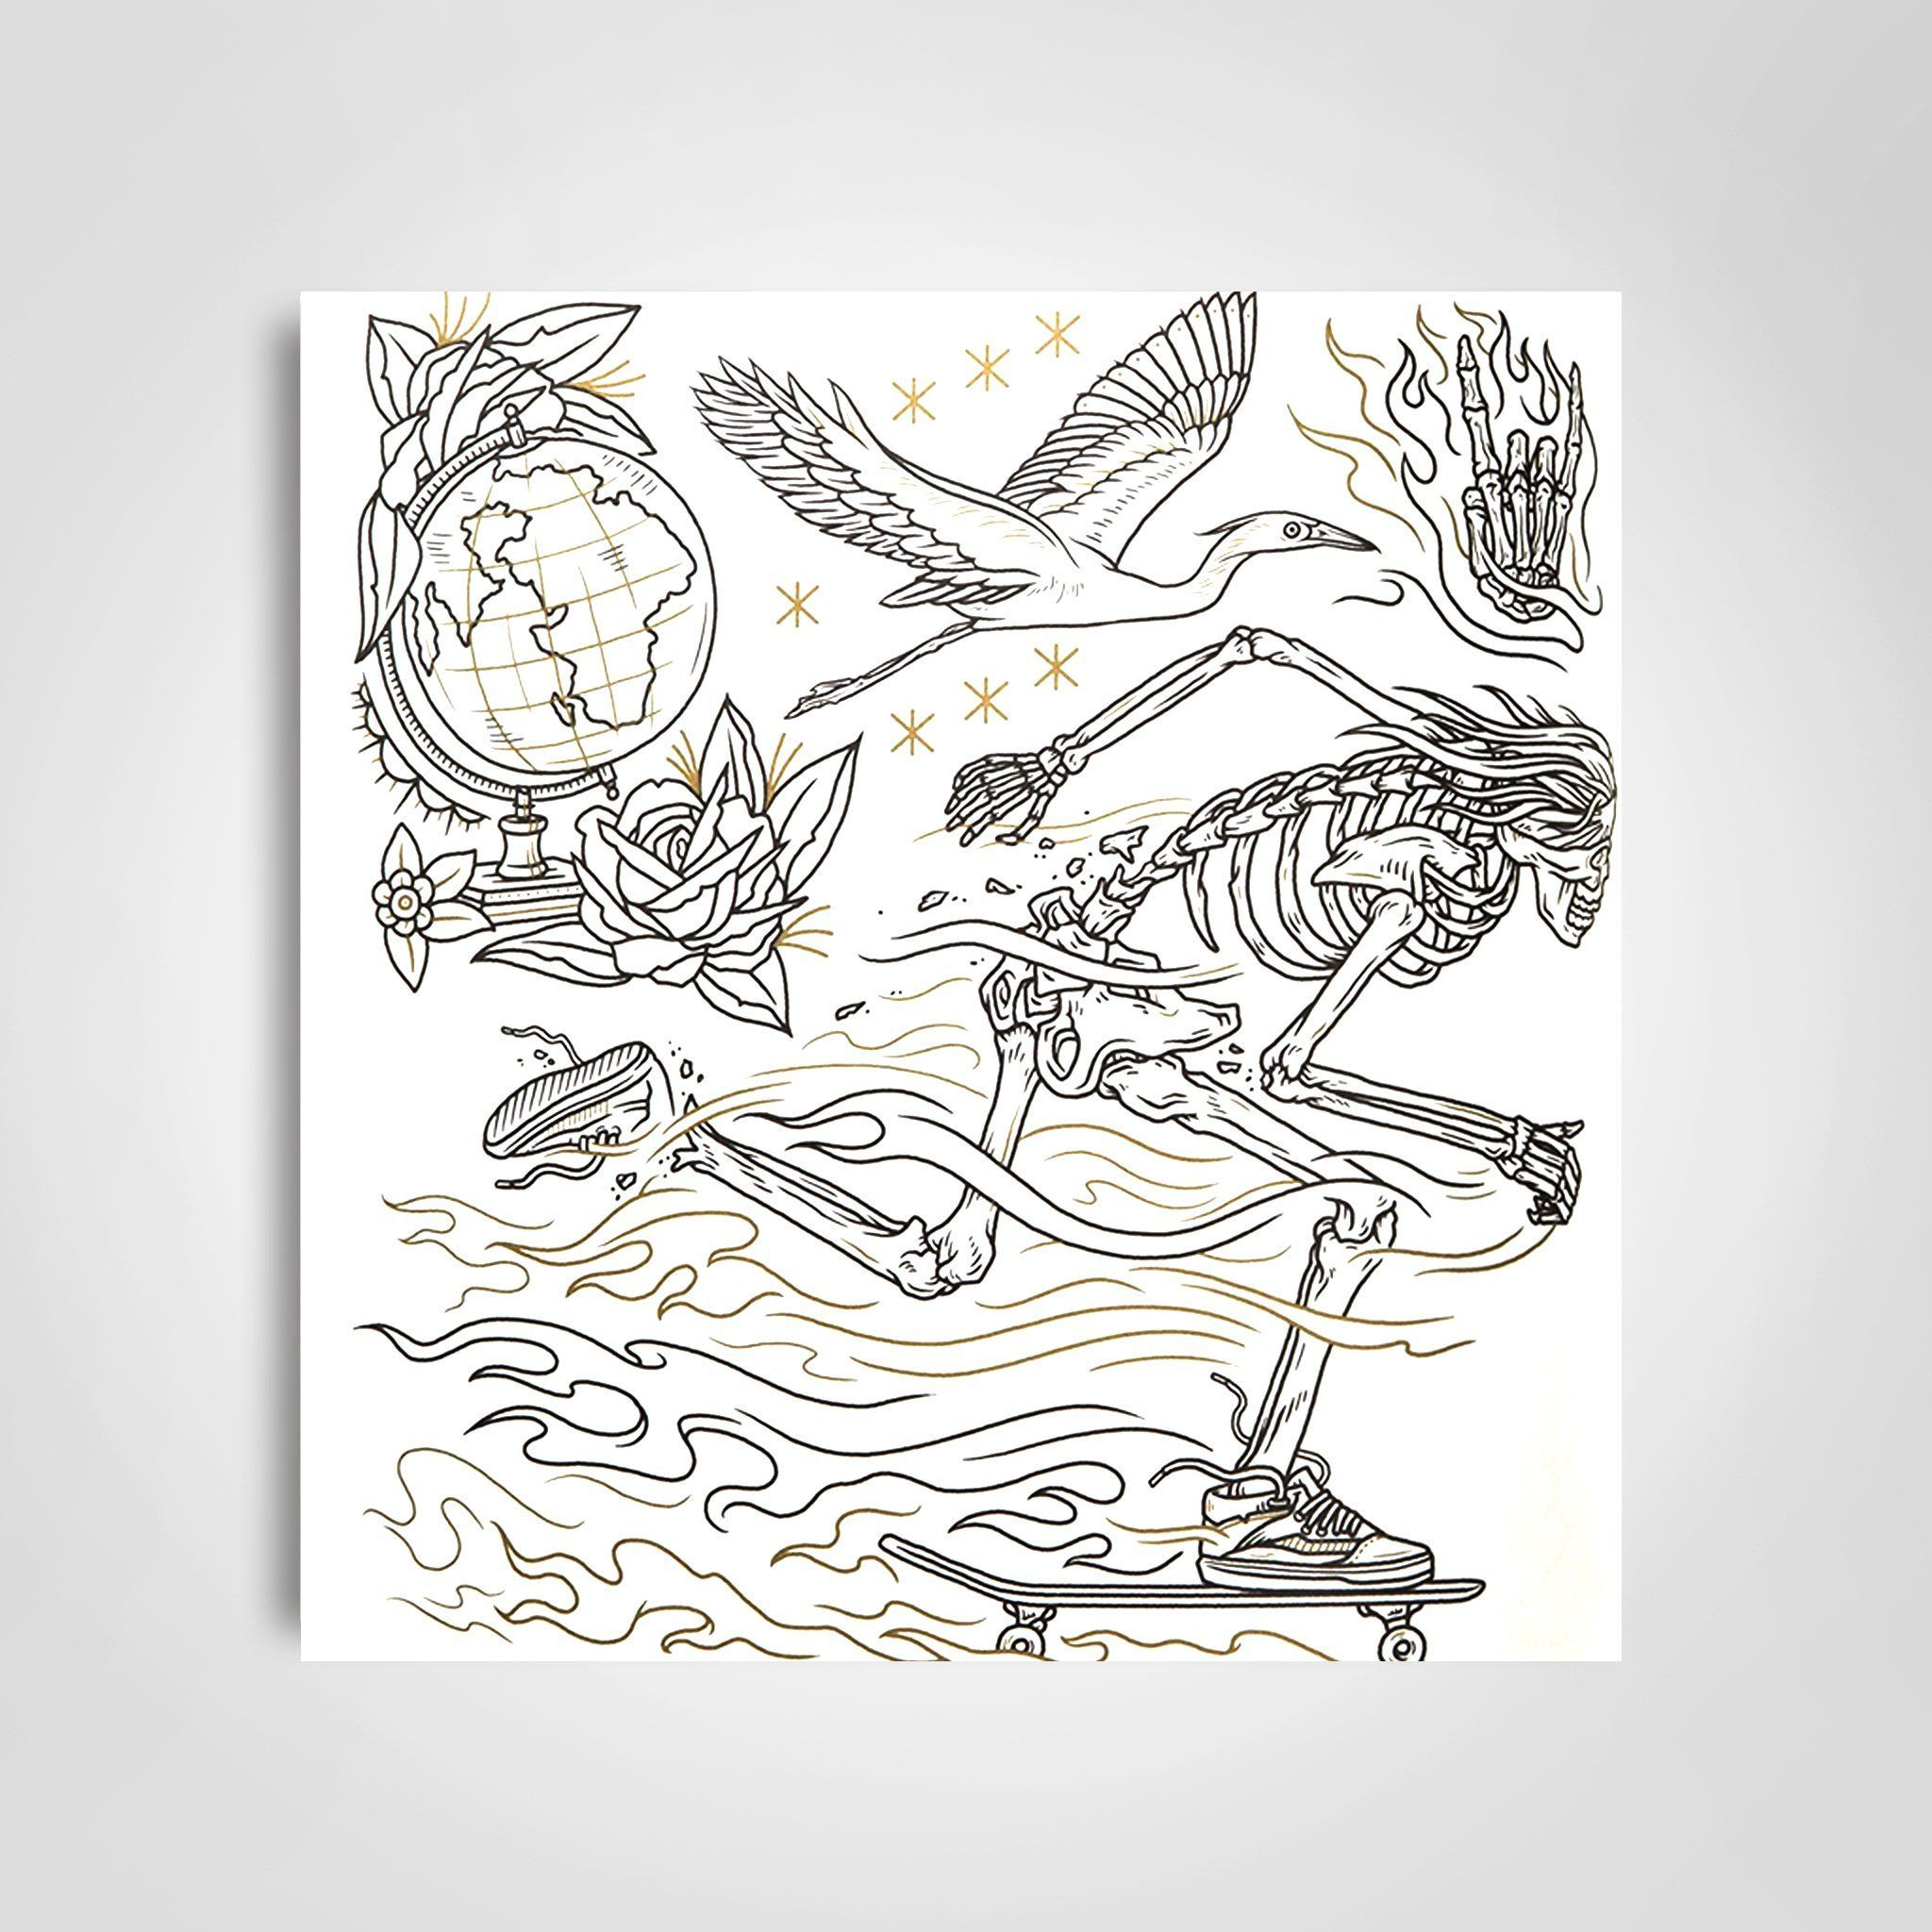 Megamunden S The Tattoo Flash Coloring Book Has 60 Pages Of Elaborate Flash Sheets Depict Themes From Ghost Tr Coloring Books Tattoo Coloring Book Flash Tattoo